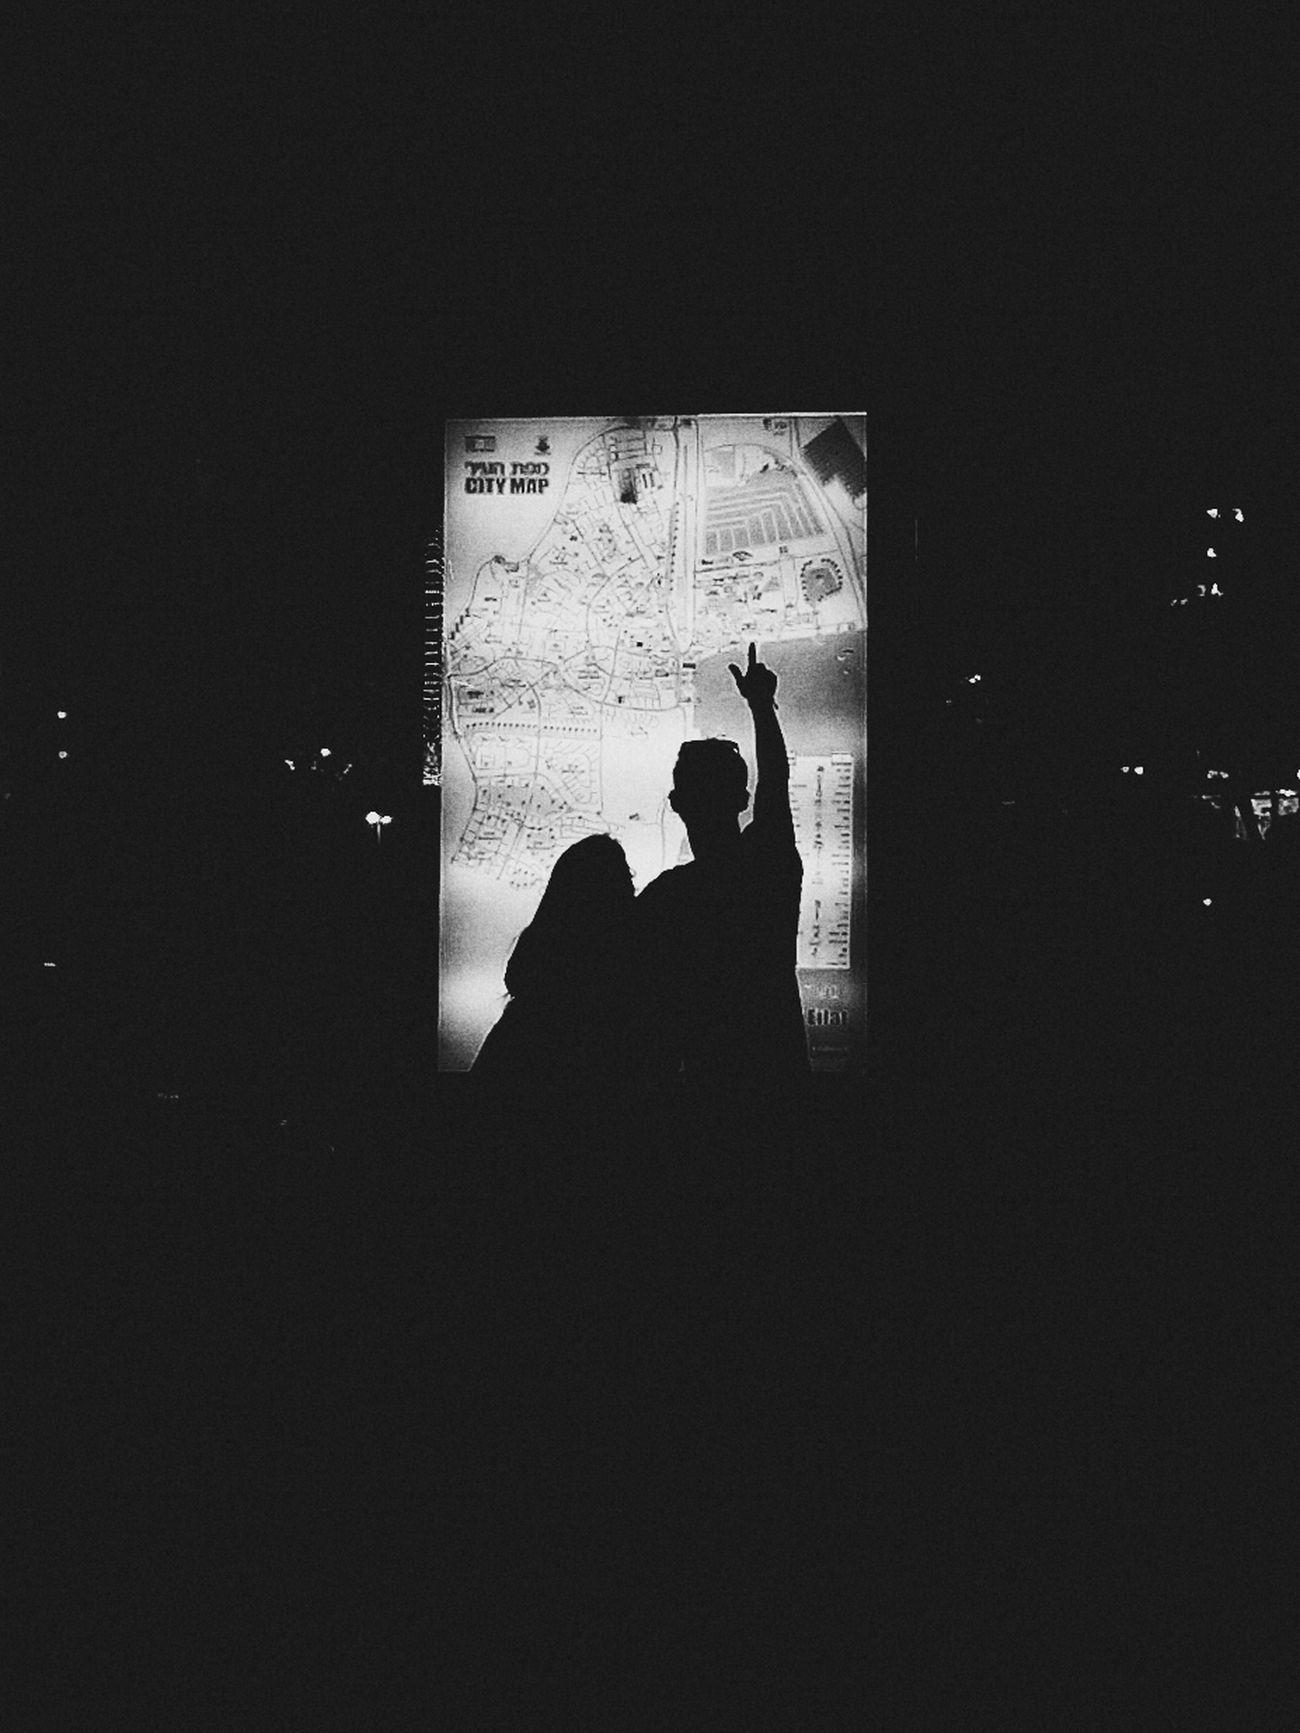 Directions. Streetphotography Blackandwhite Silhouette Night Htc One M8 Vscocam Mobilephotography